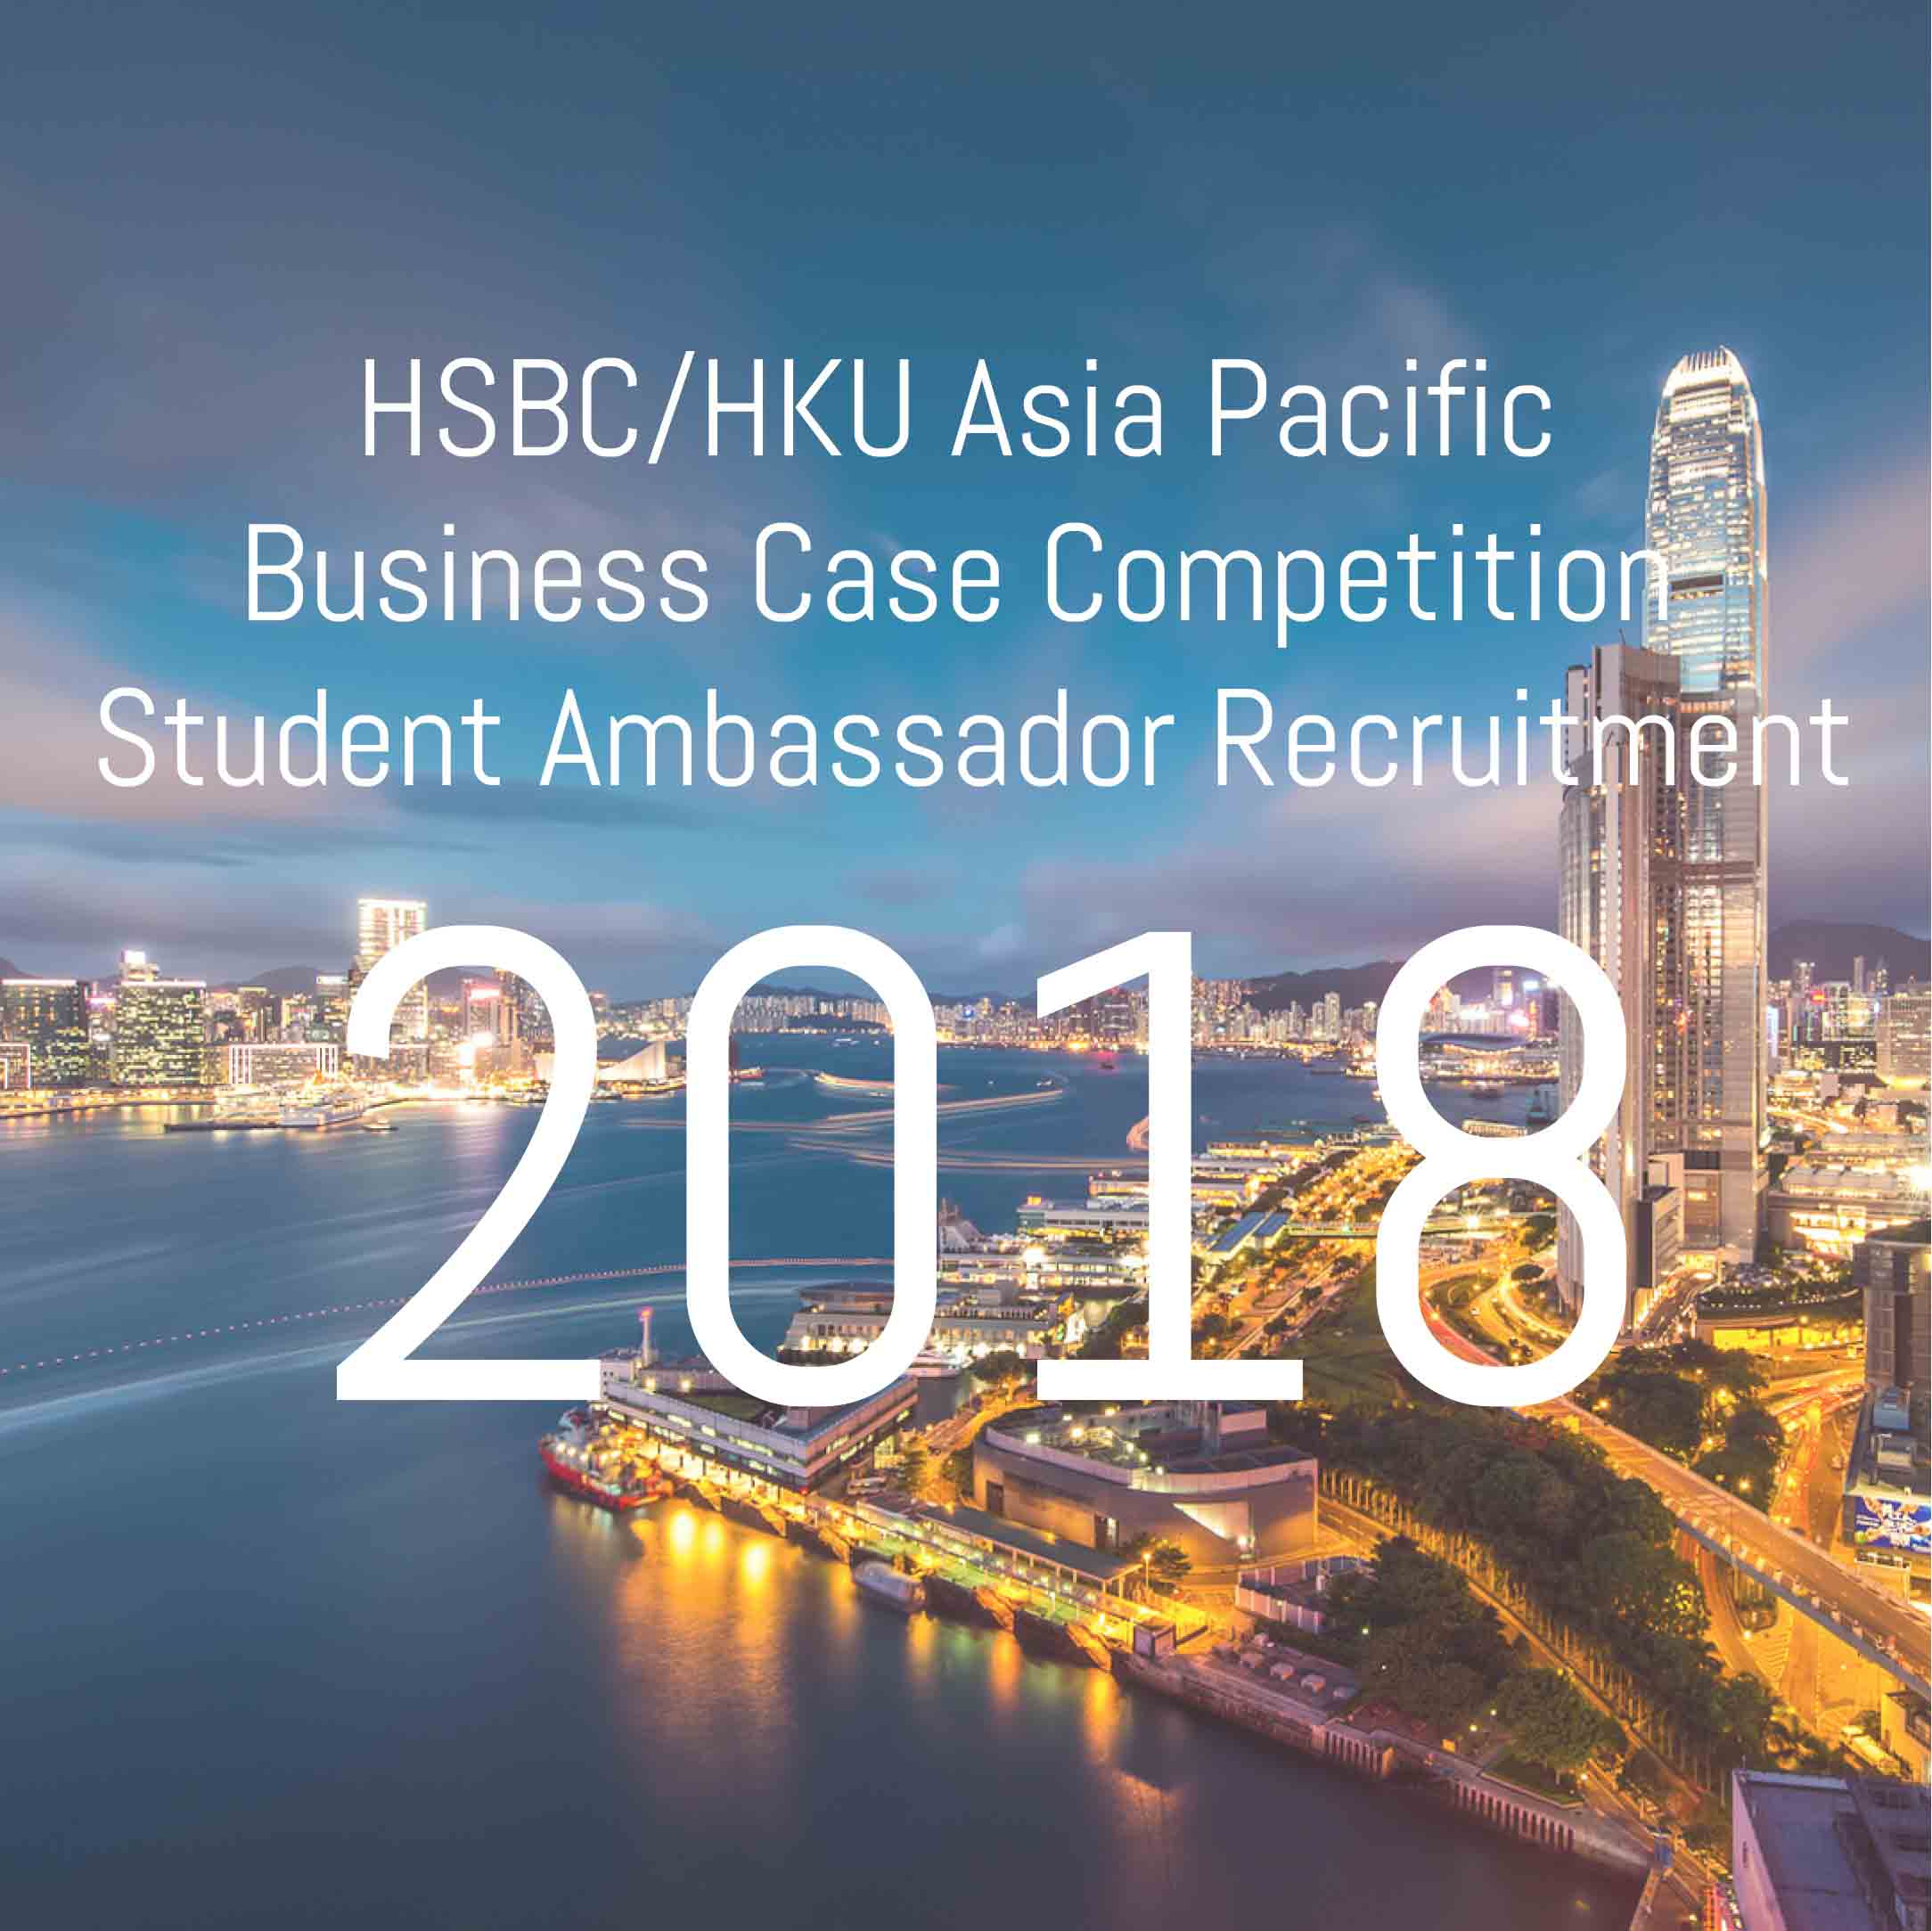 HSBC/HKU Asia Pacific Business Case Competition 2018 Student Ambassador Recruitment